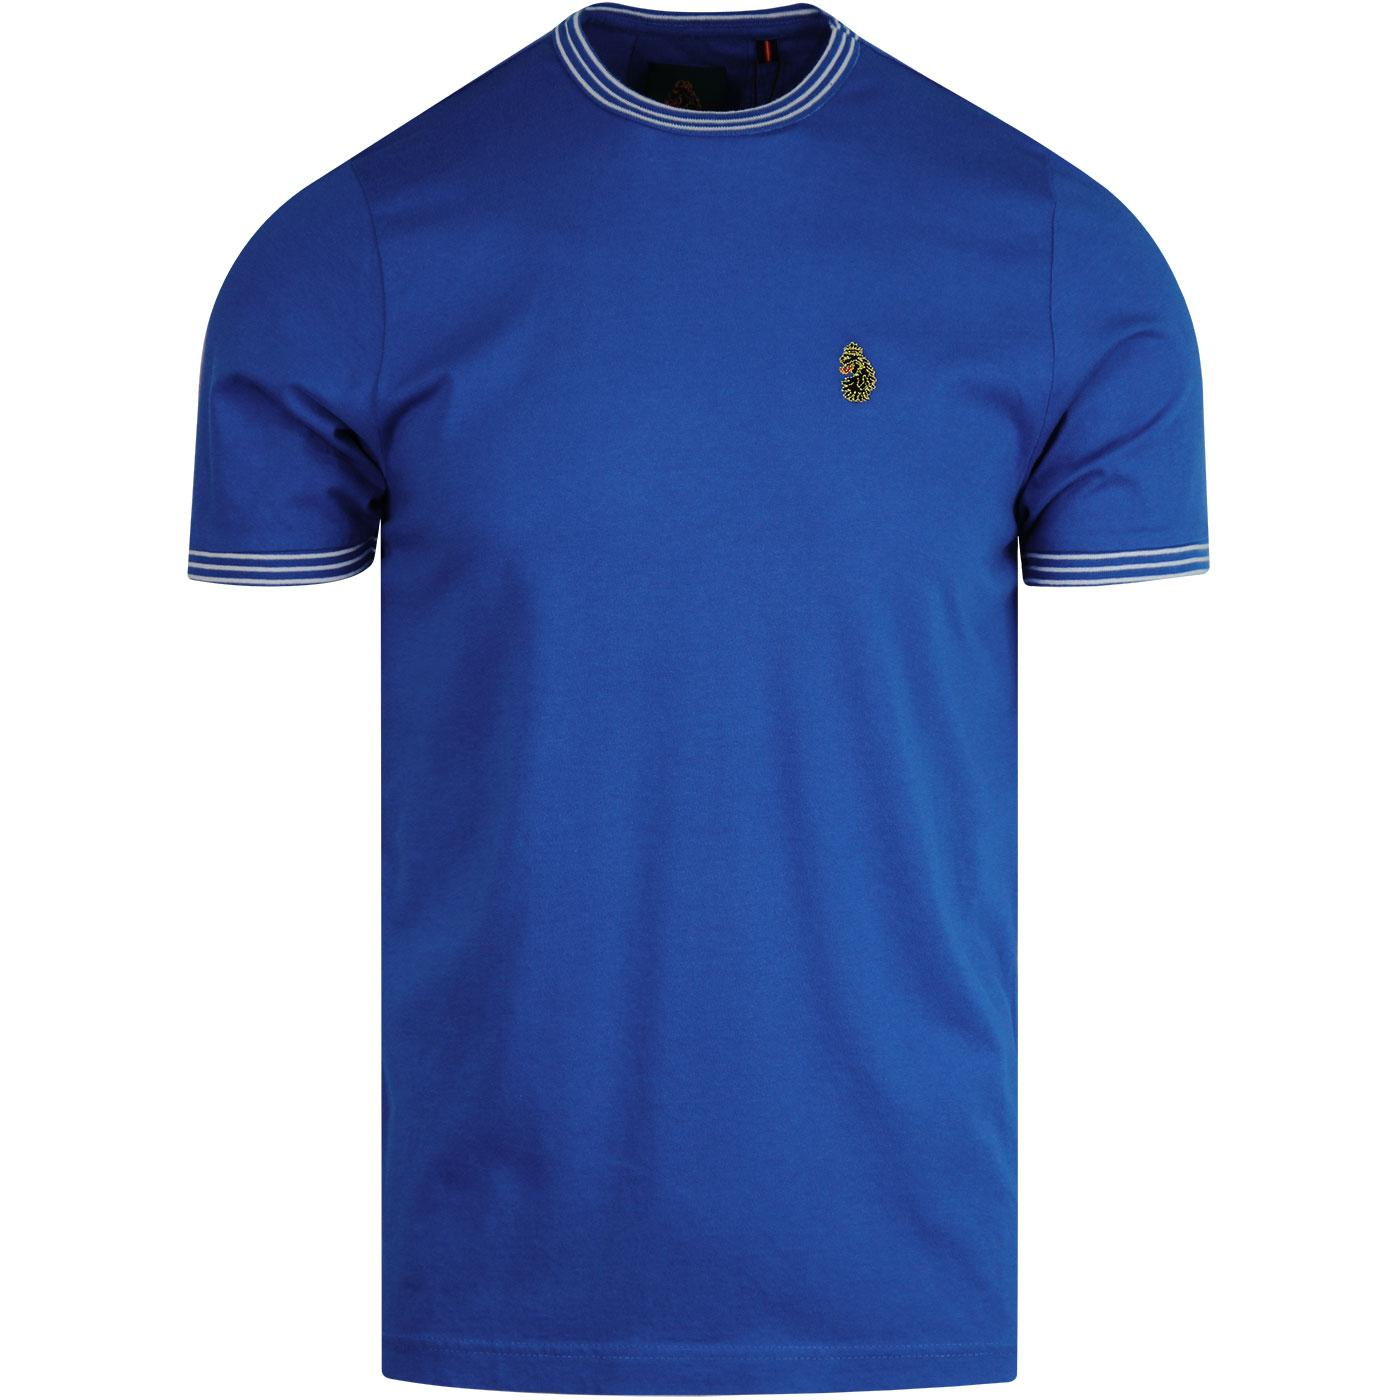 Traff 2 LUKE 1977 Crew Neck Sports T-Shirt Cobalt